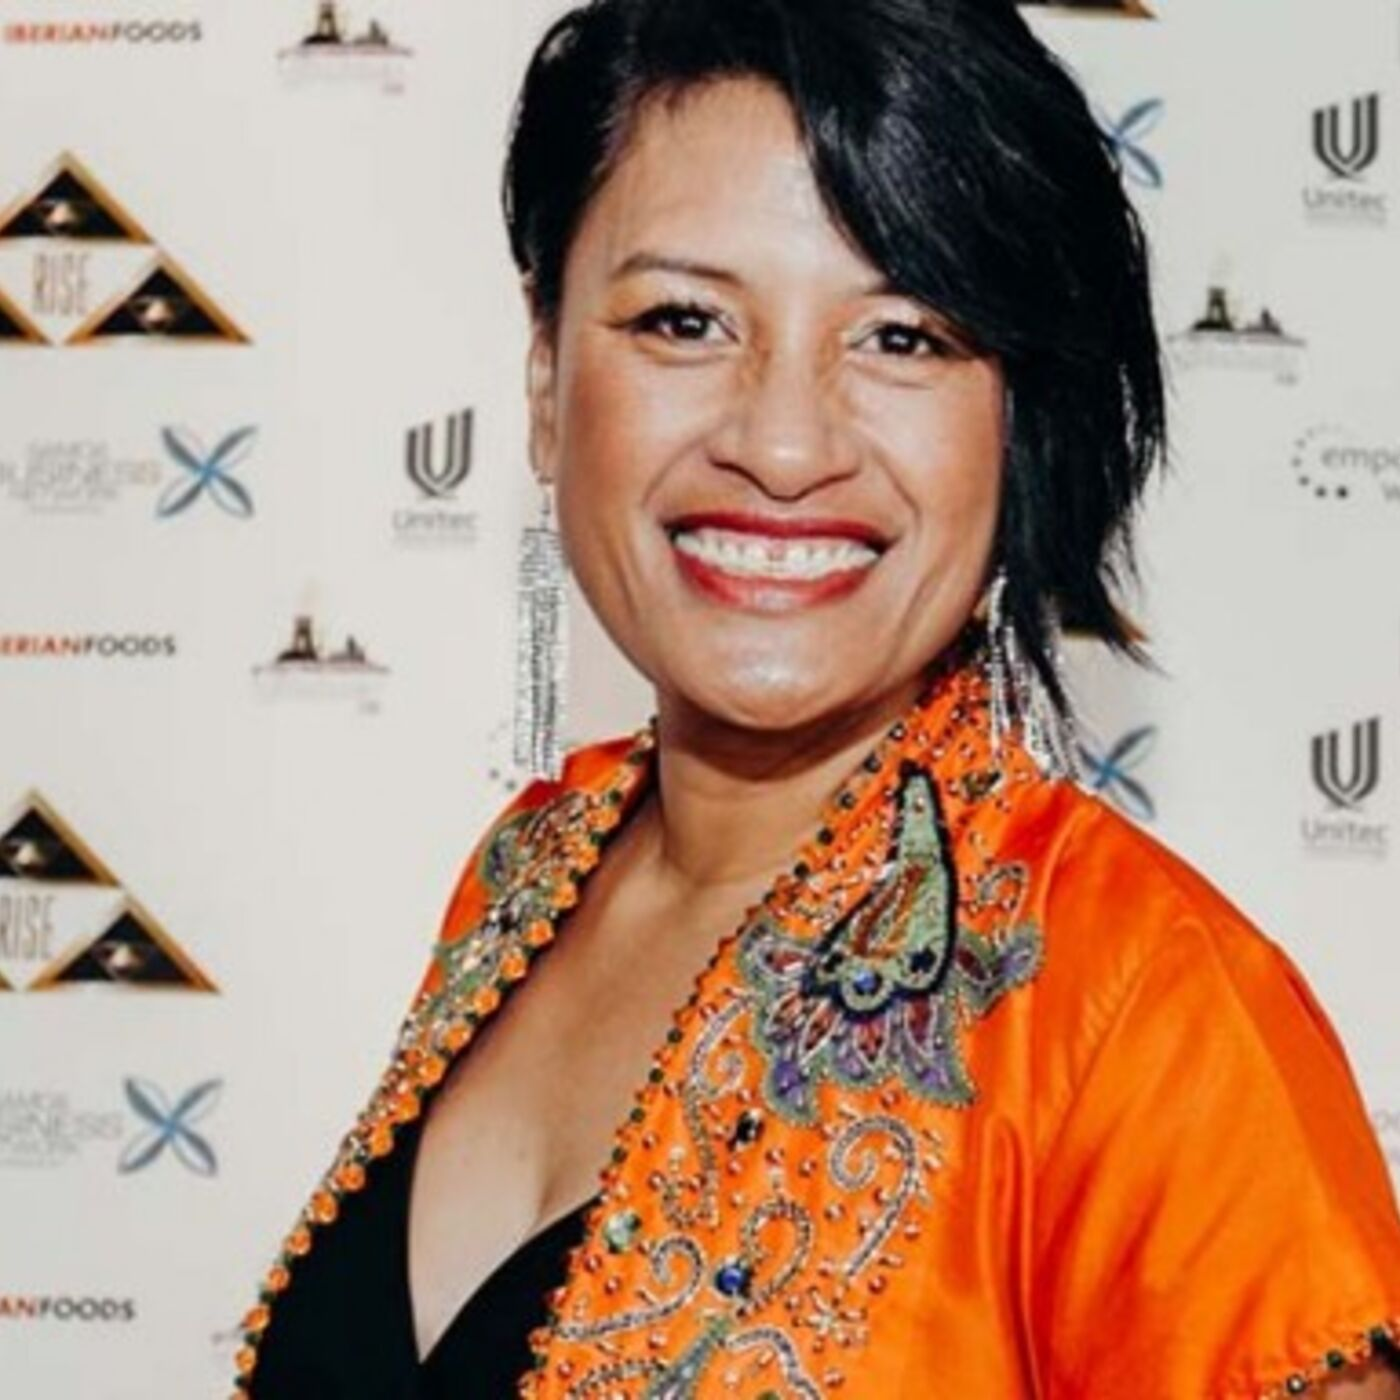 Episode 66 - Rachel Petero - Author and Champion of Human Rights & a Great Person to boot!